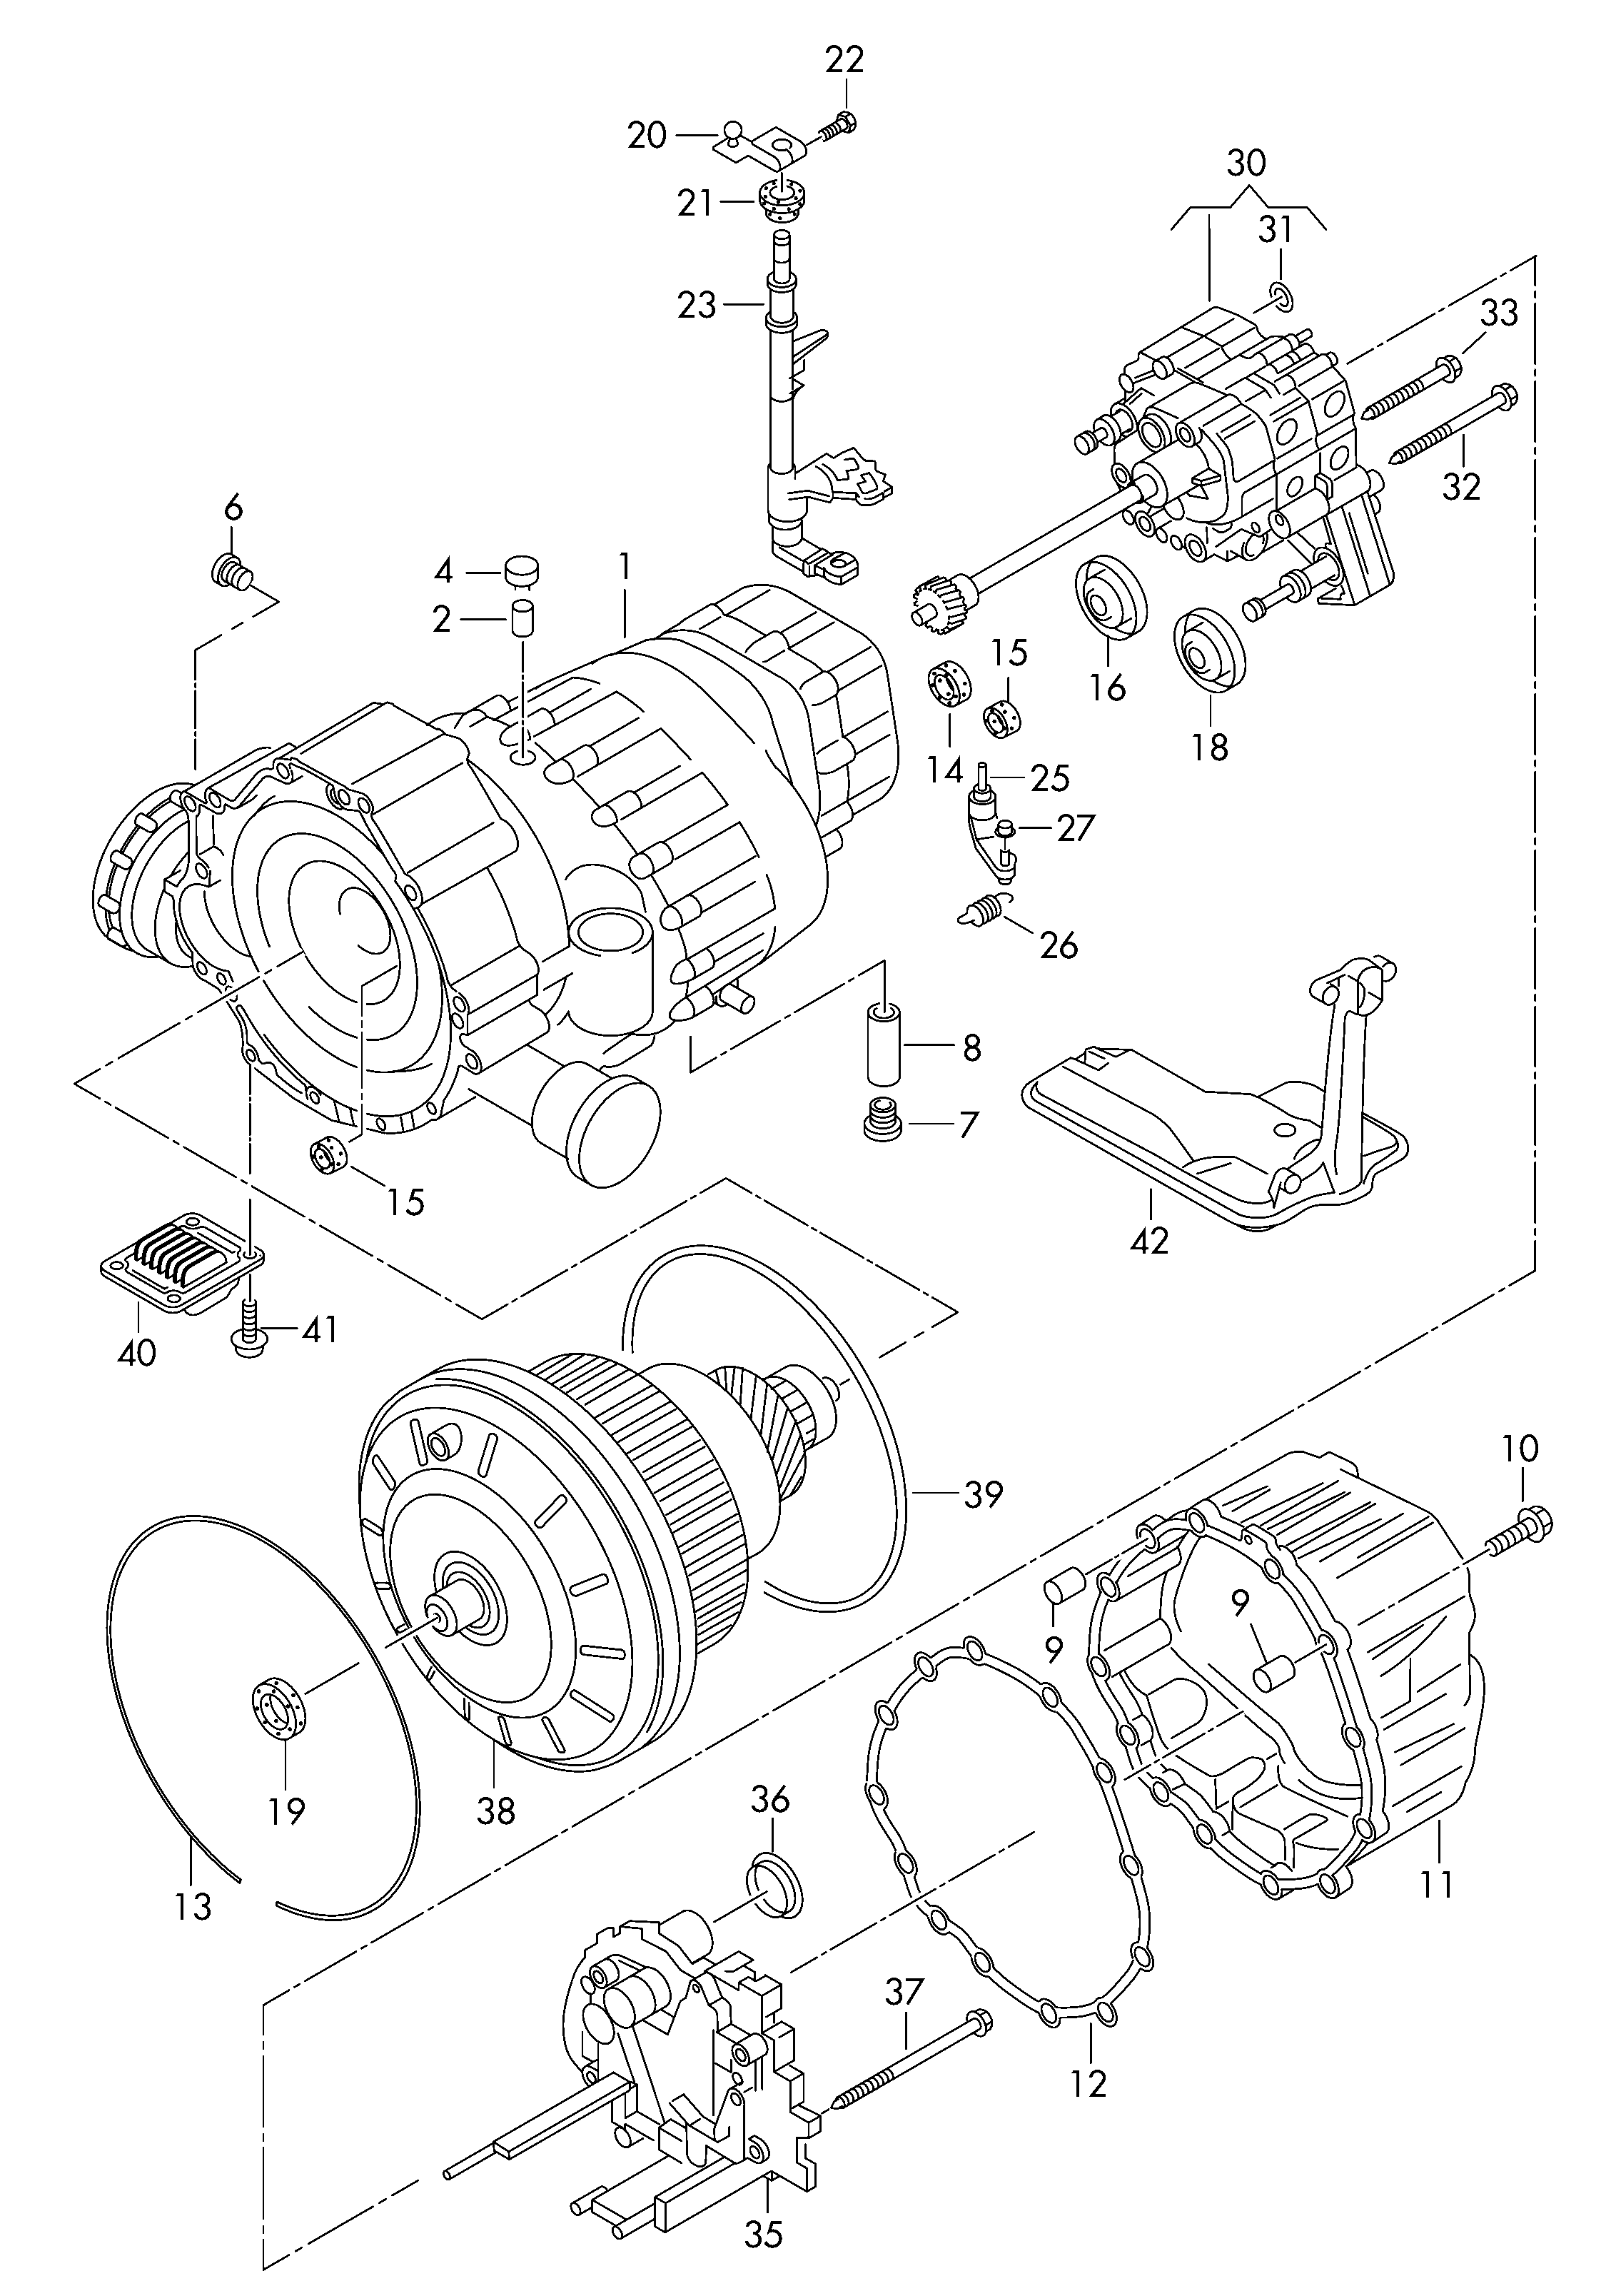 700r4 Transmission Pump Diagram Together With Automatic Transmission